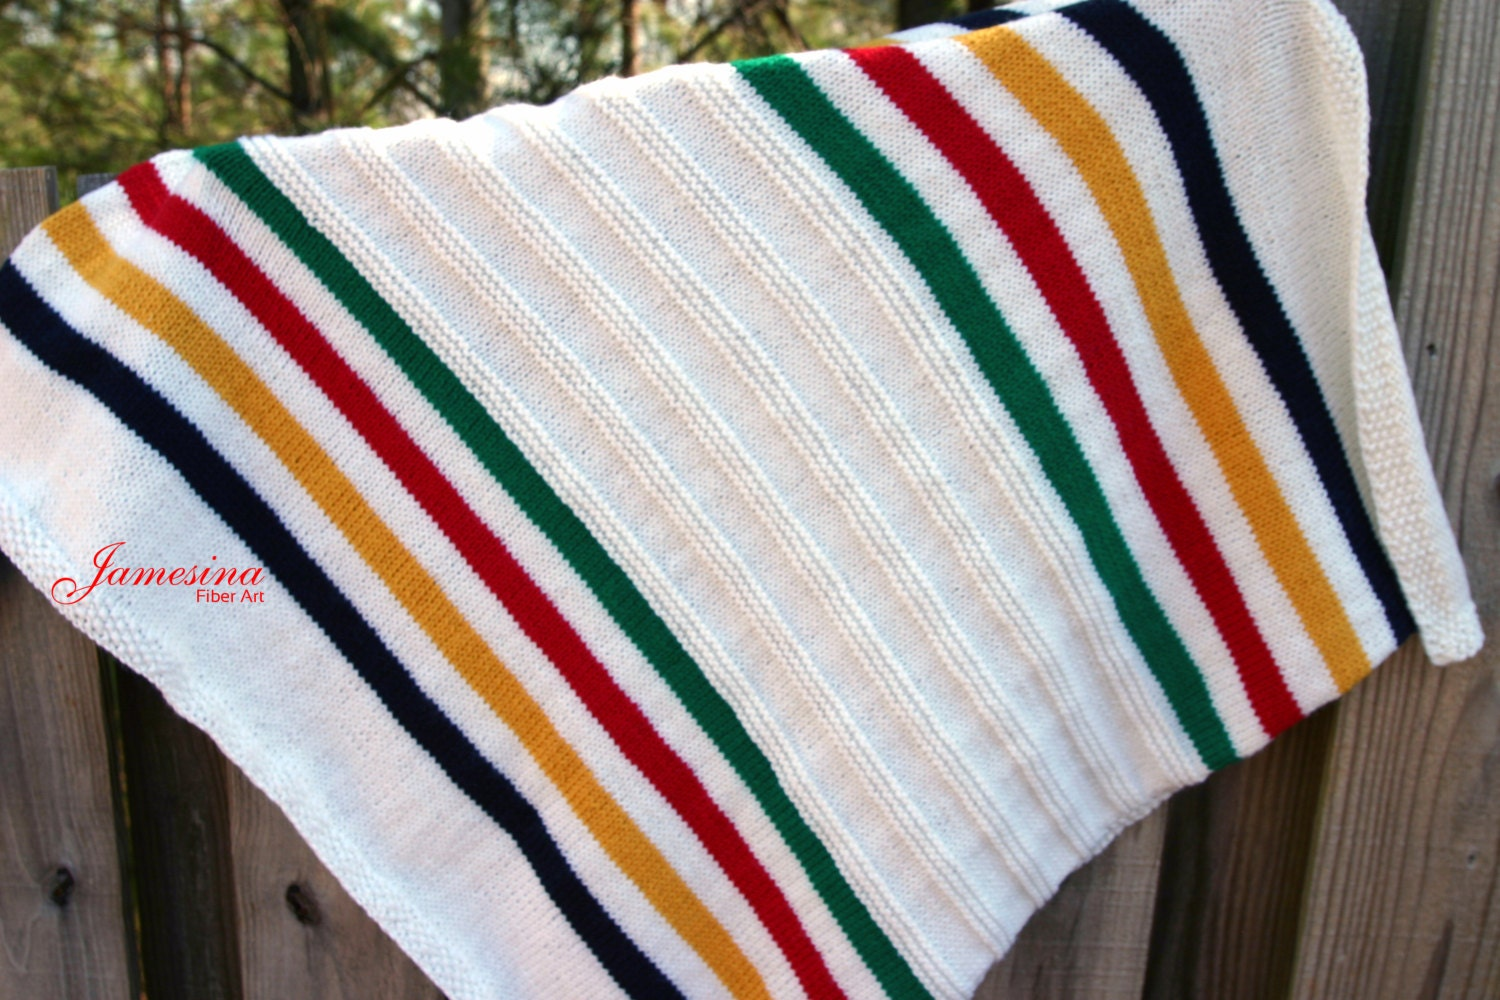 Knitting Pattern For Hudson Bay Blanket : Hand Knit Hudson Bay Inspired Textured Baby Blanket